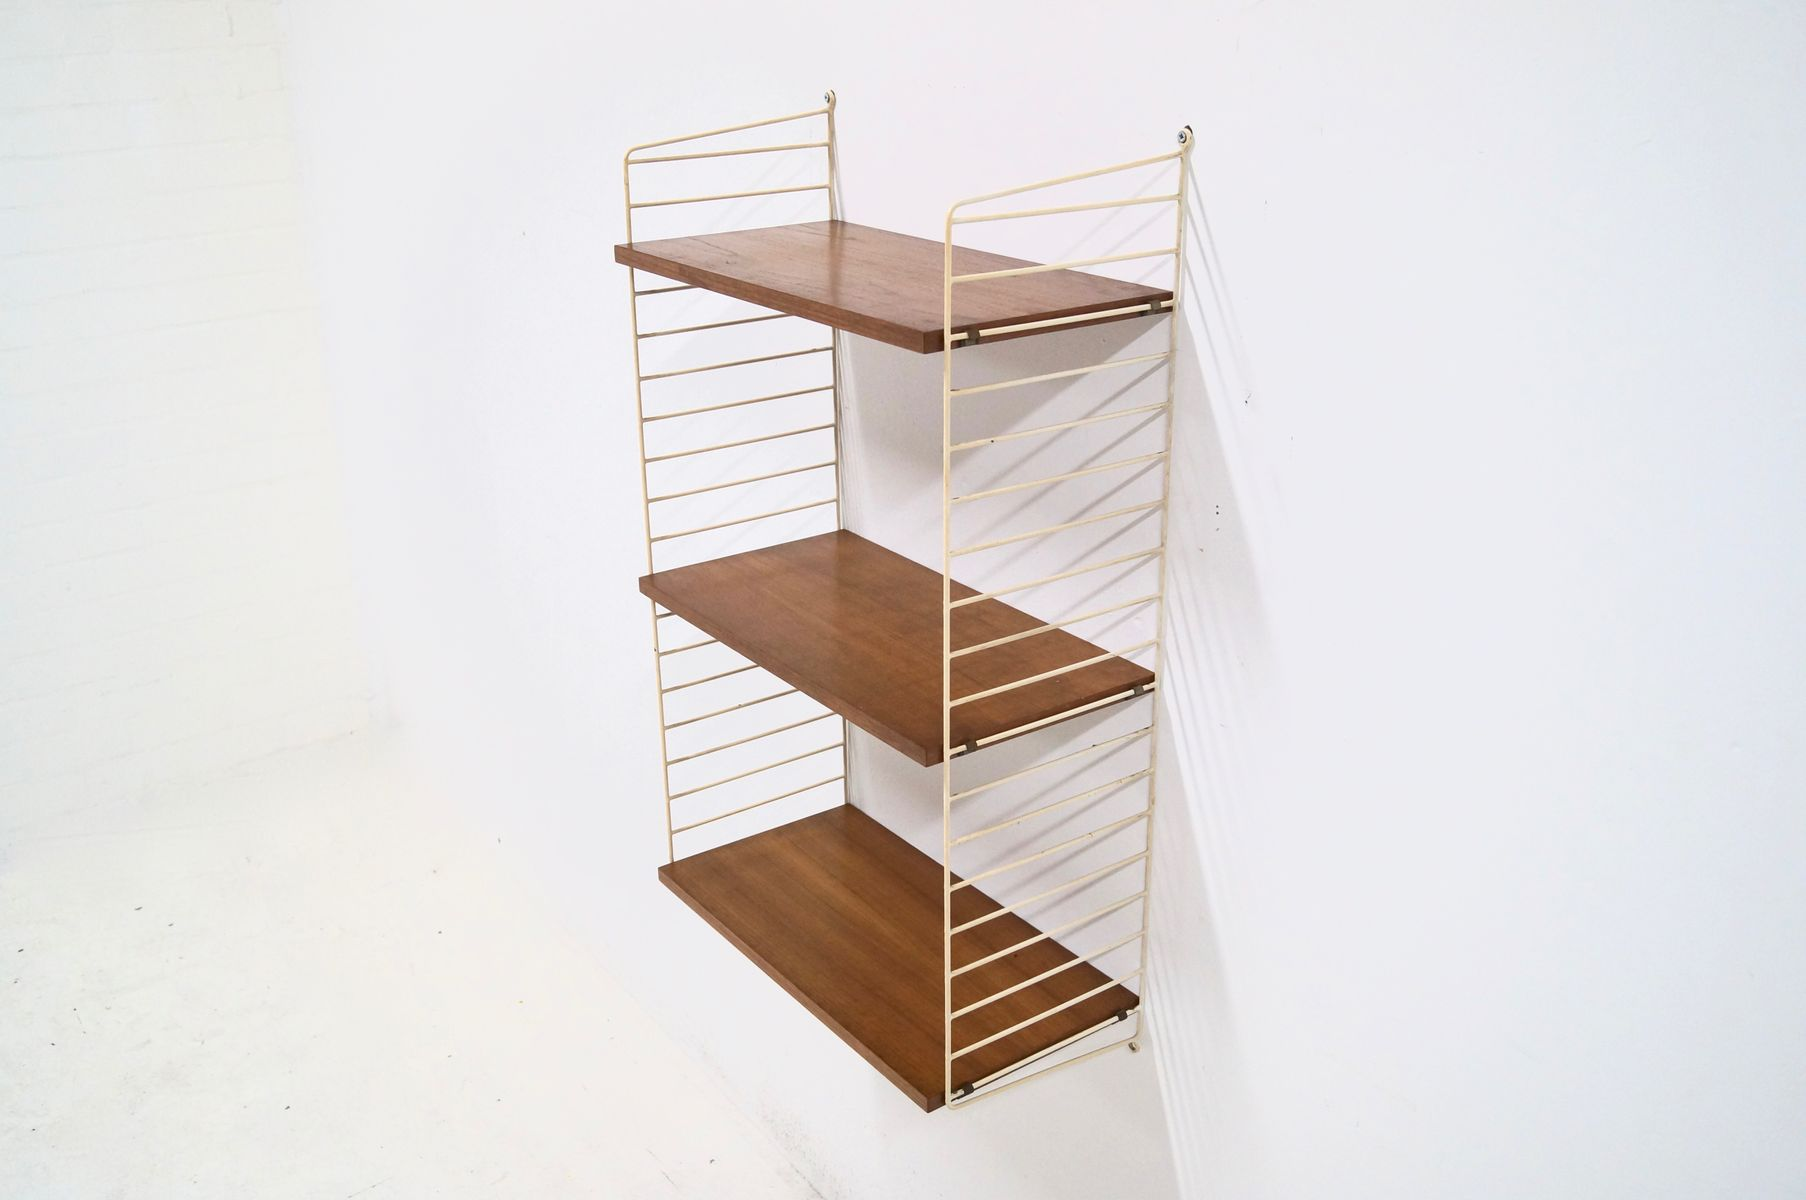 Teak Ladder Shelf Wall Unit By Kajsa & Nils Nisse